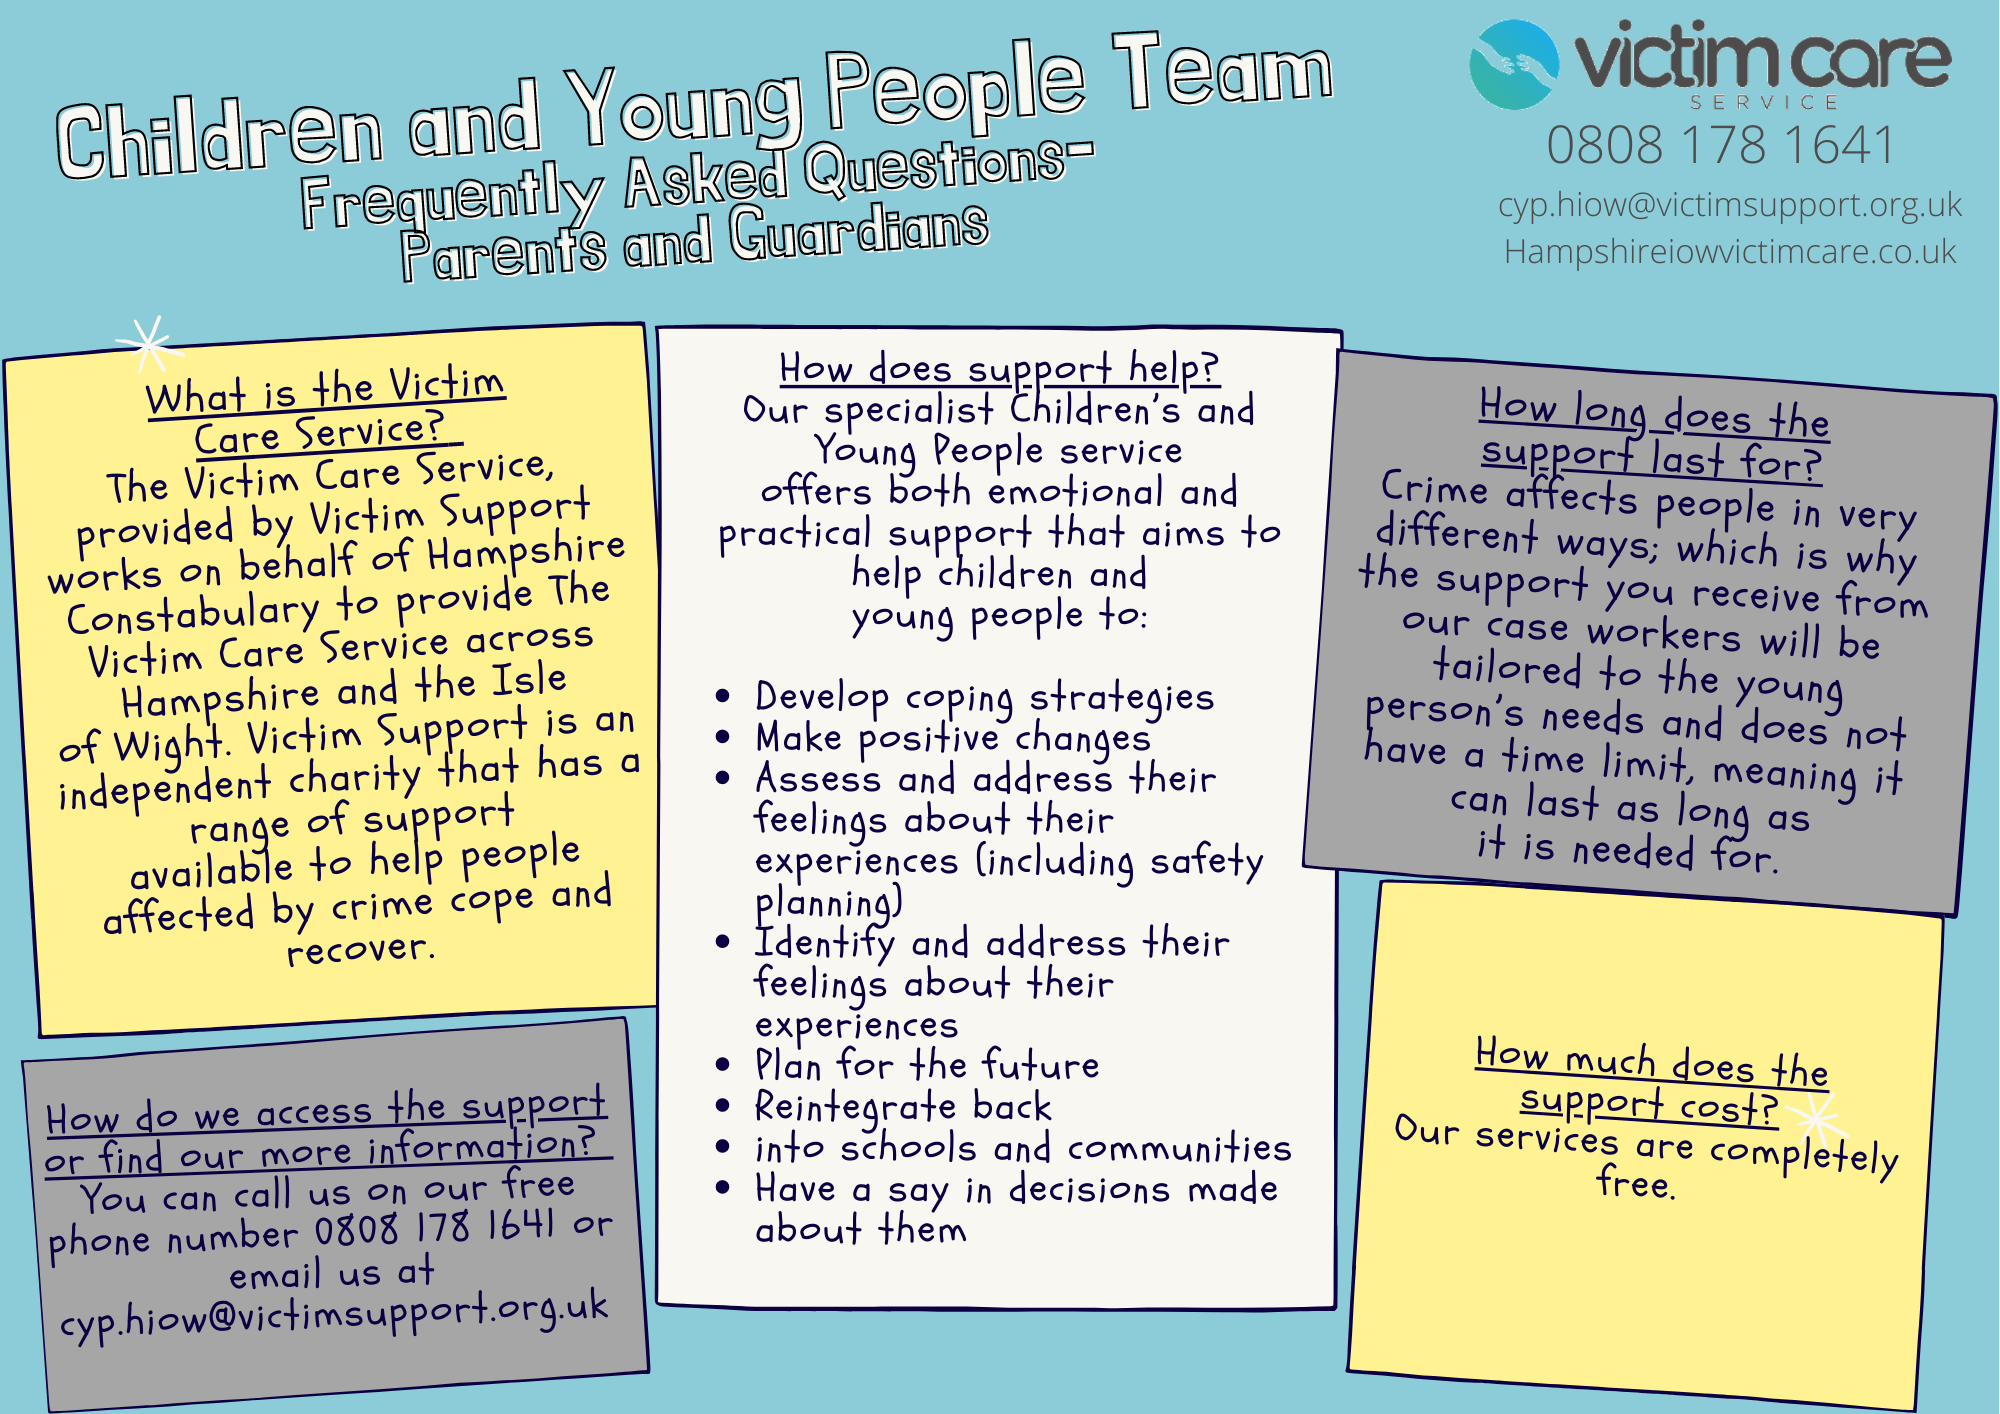 Frequently asked questions about our Children and Young People Team